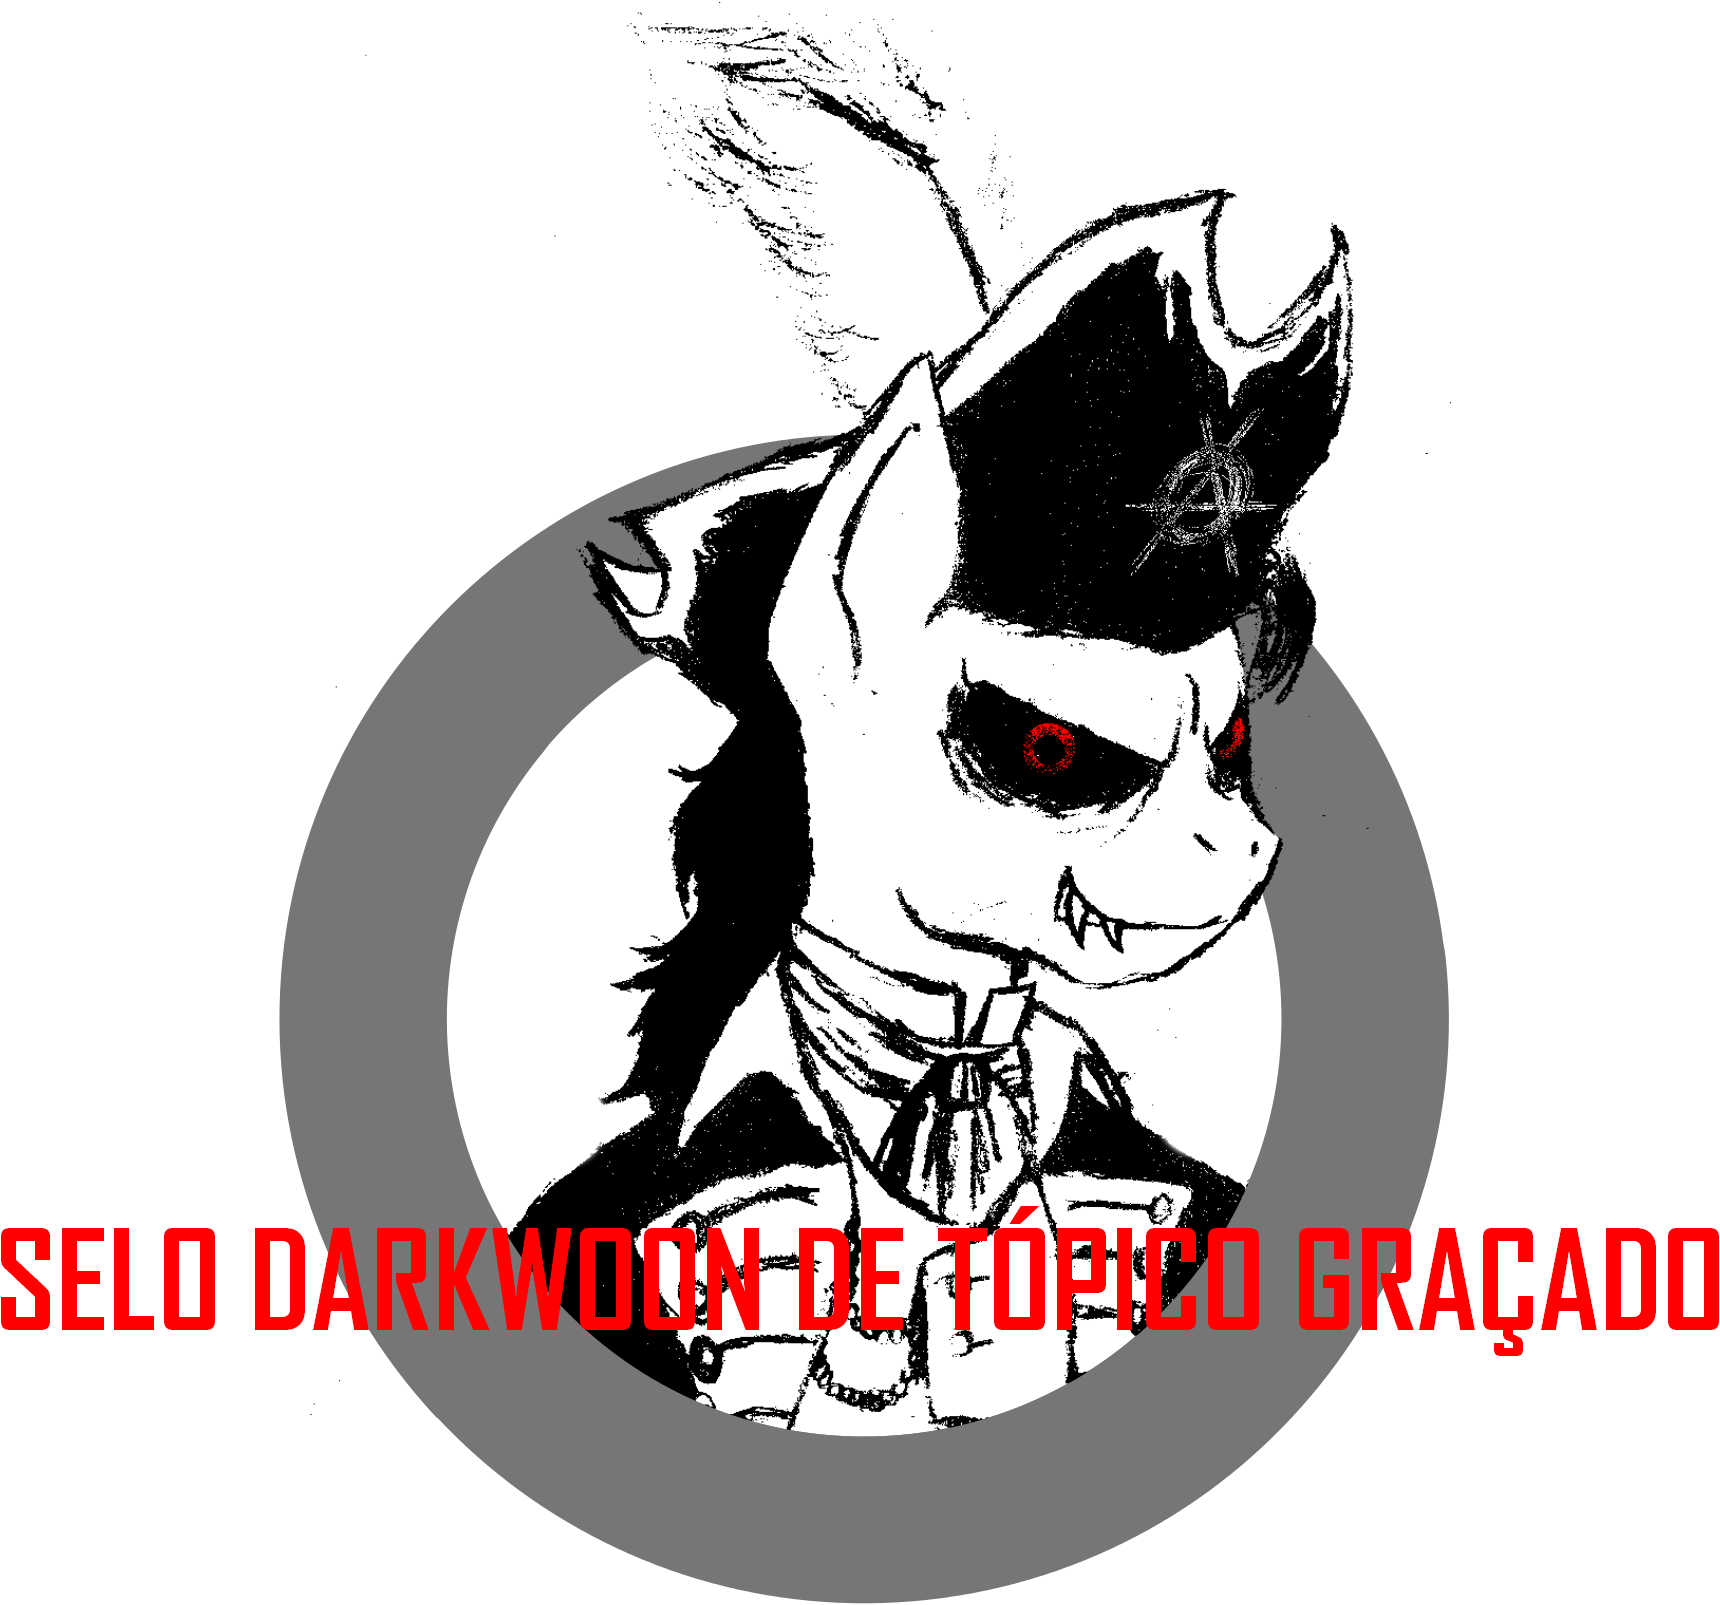 [Imagem: selo666_by_darkwoon-d8xsvaz.png]